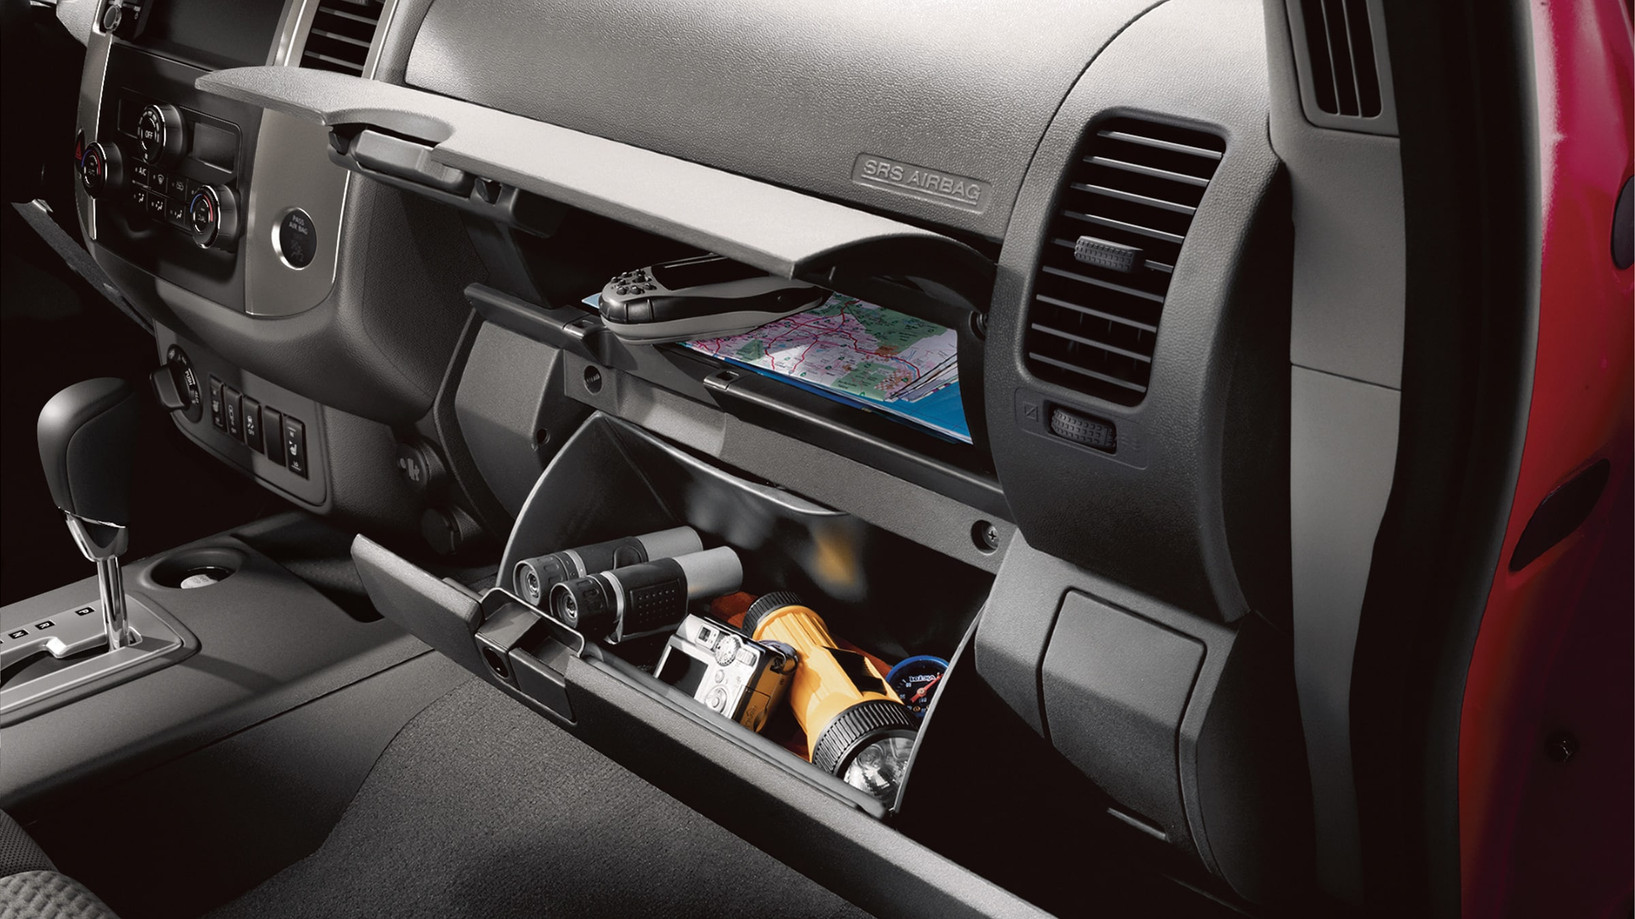 2020-frontier-glove-compartment-20tdipac